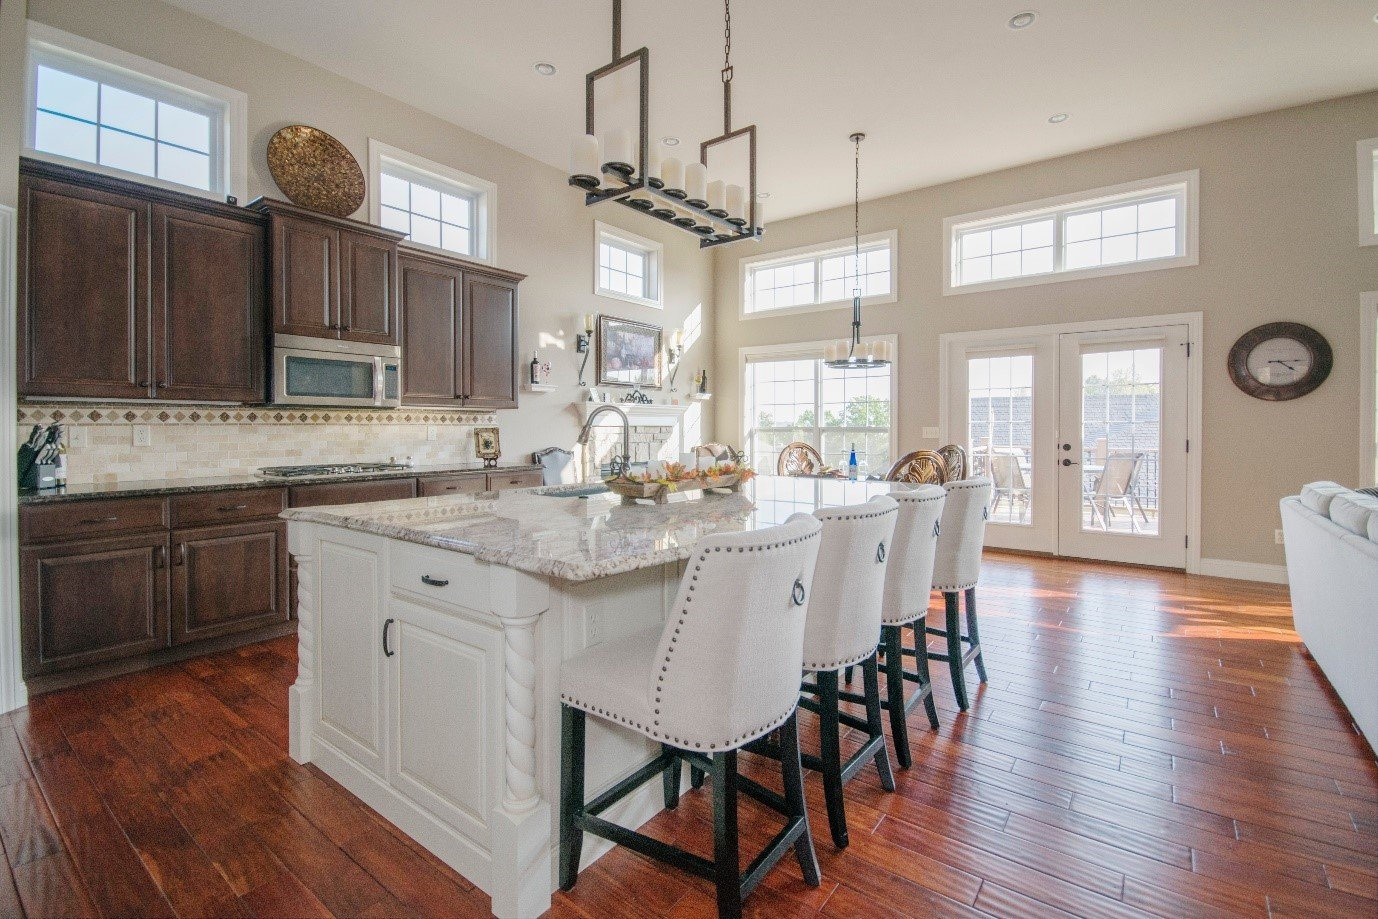 3 Interior Design Tips for your Open Plan Kitchen